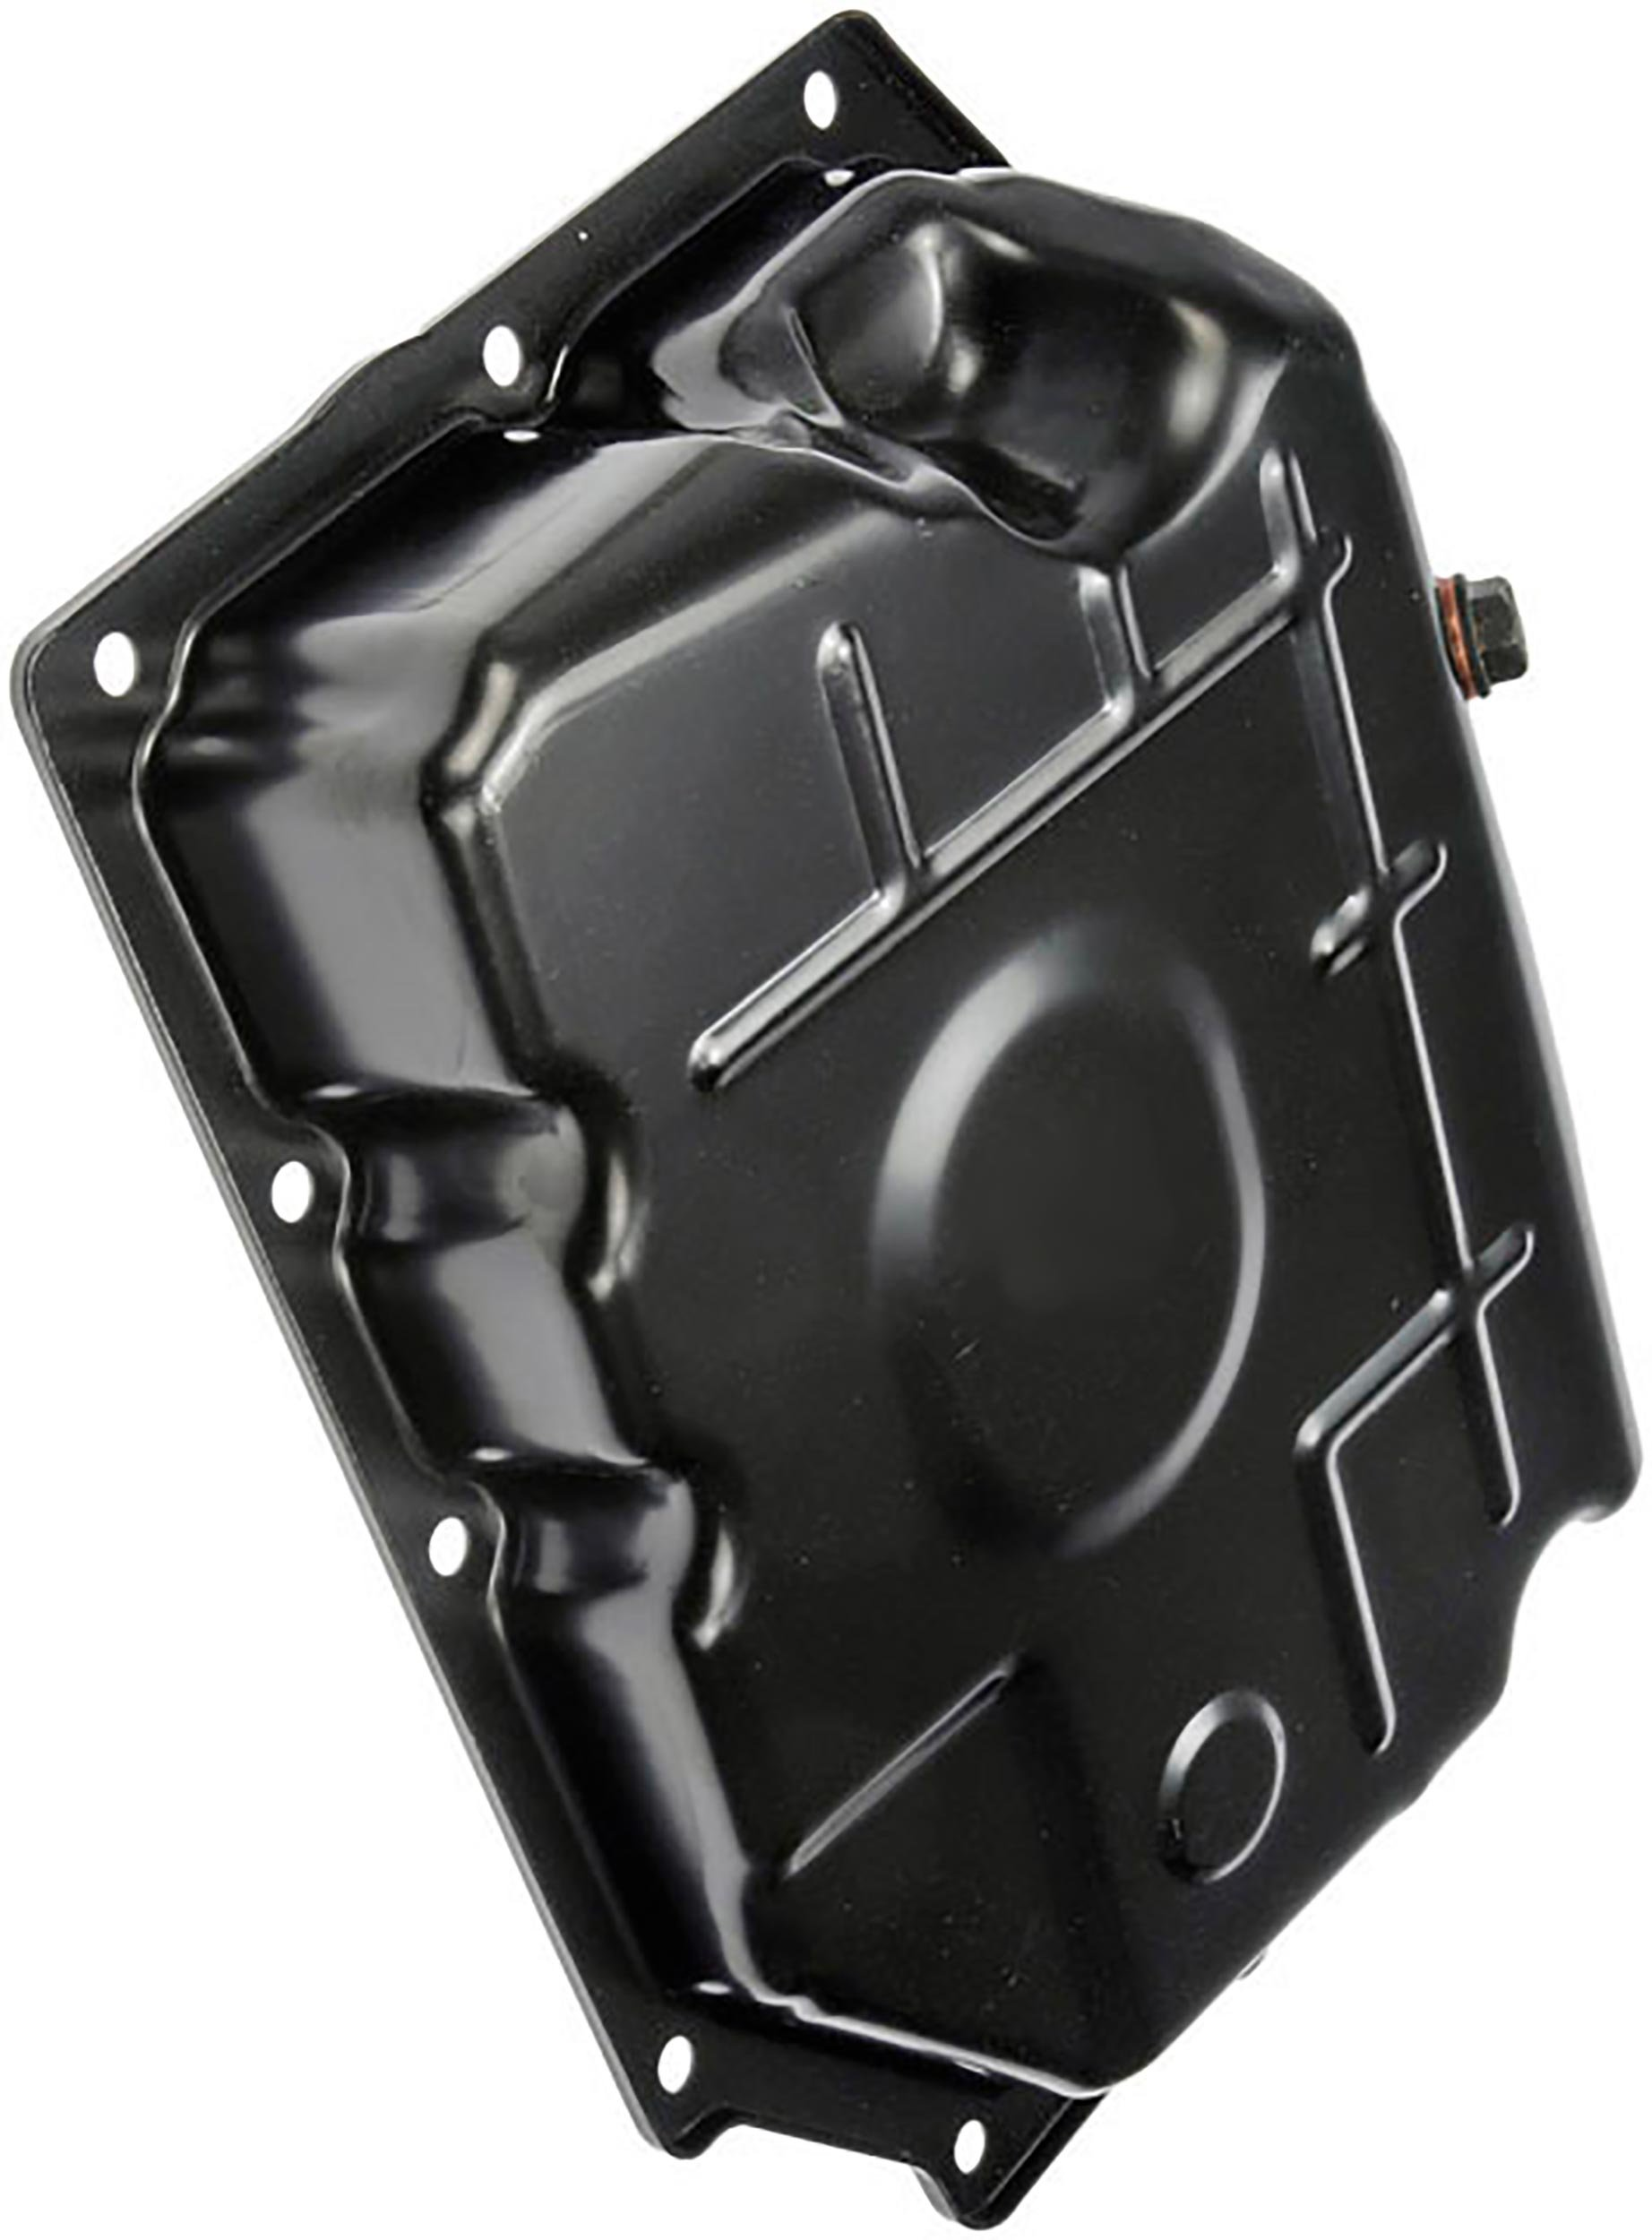 APDTY 113672 Transmission Steel Oil Pan Upgraded With Drain Plug Fits 42RLE Transmission Identifed By 13 Bolt Holes Fits Select Chrysler Dodge Jeep Mitsubishi Models Replaces 52852912AC, 52852912AB